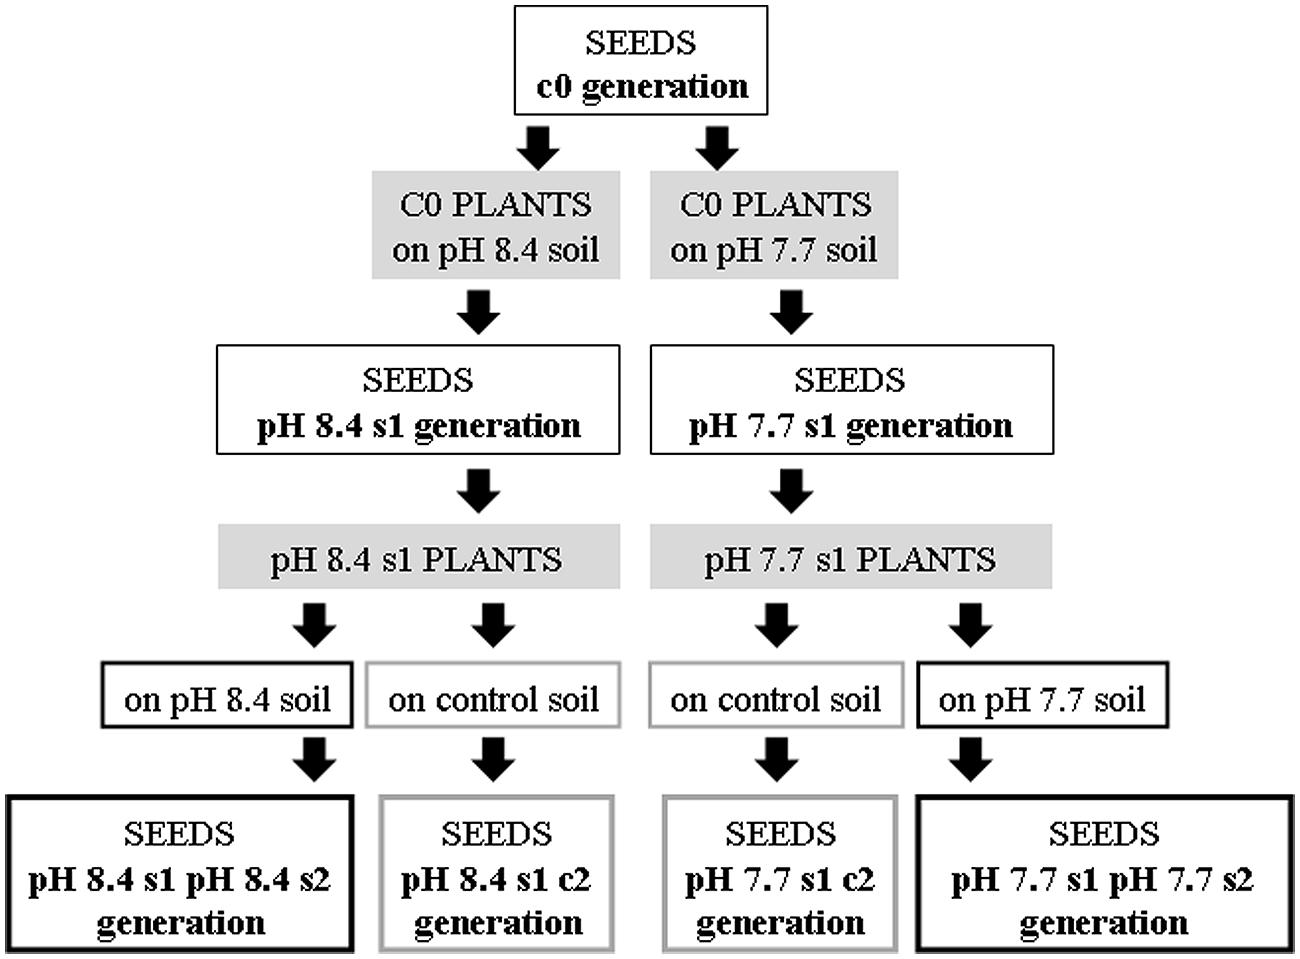 Frontiers Analysis Of The Transgenerational Iron Deficiency Stress Voice Changer Circuit